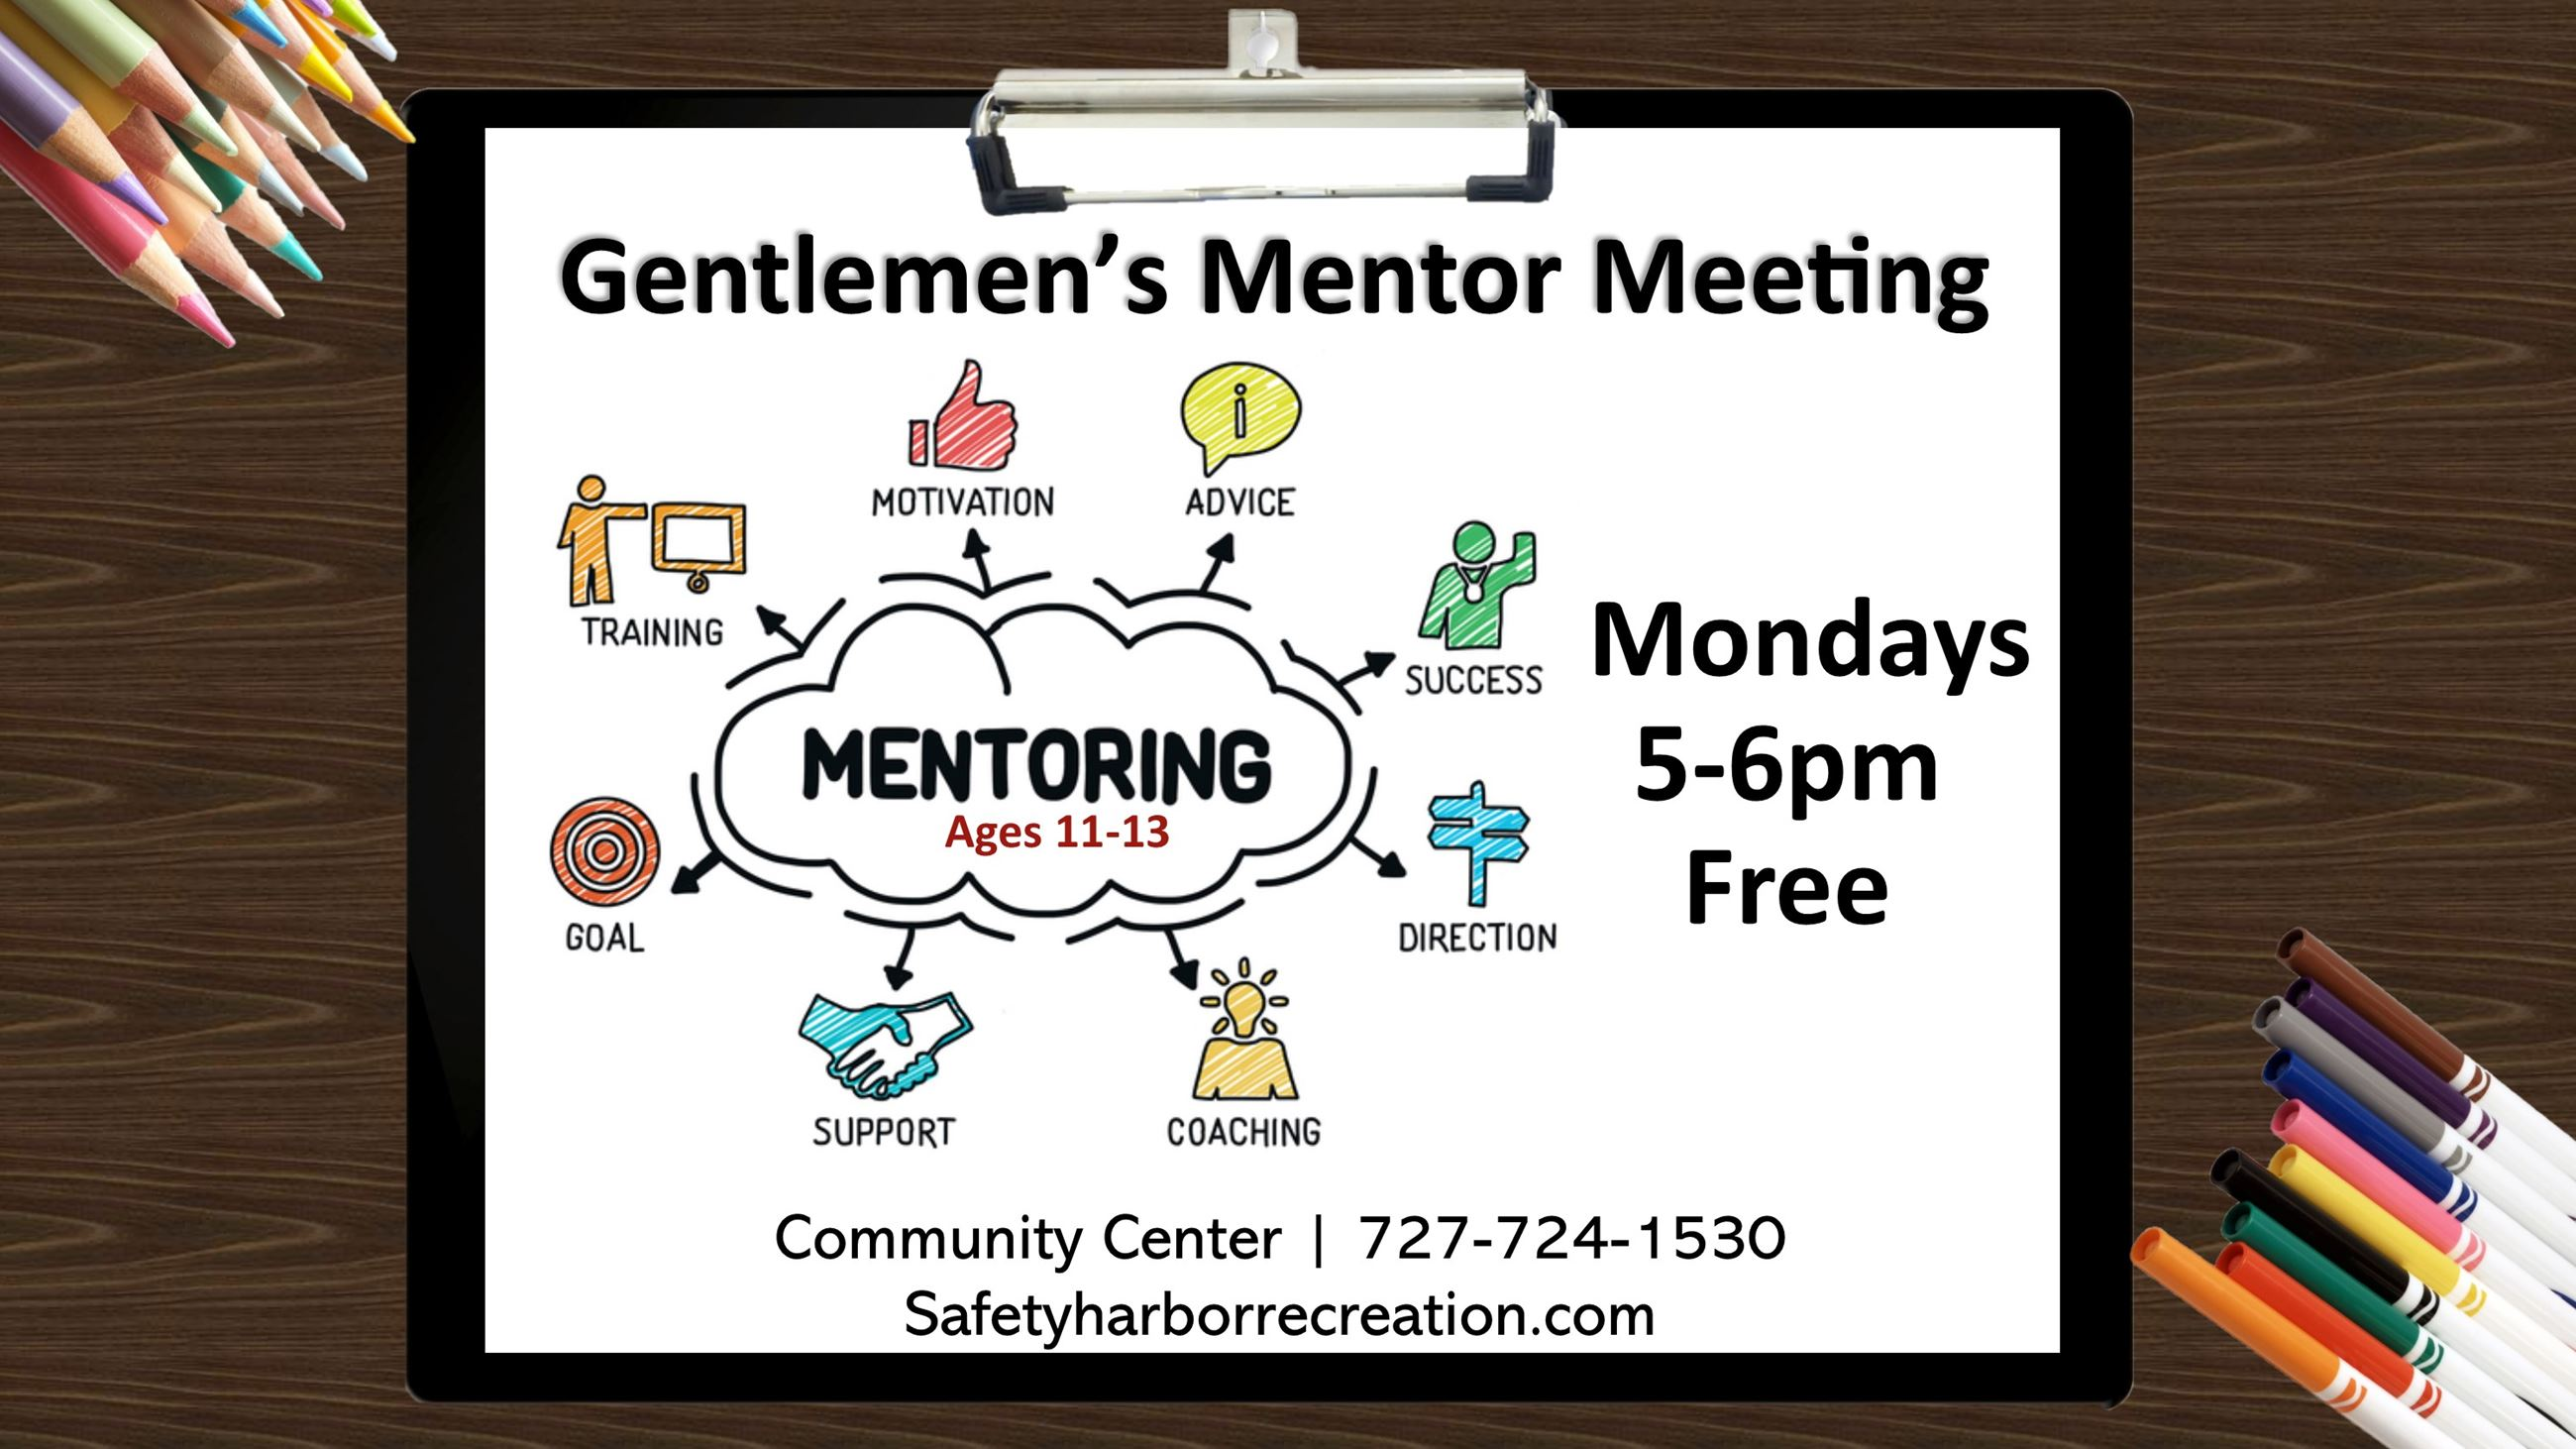 Gentlemen's Mentor Meeting, Mondays 5-6pm, FREE. Ages 11-13, Community Center, 727-724-1530